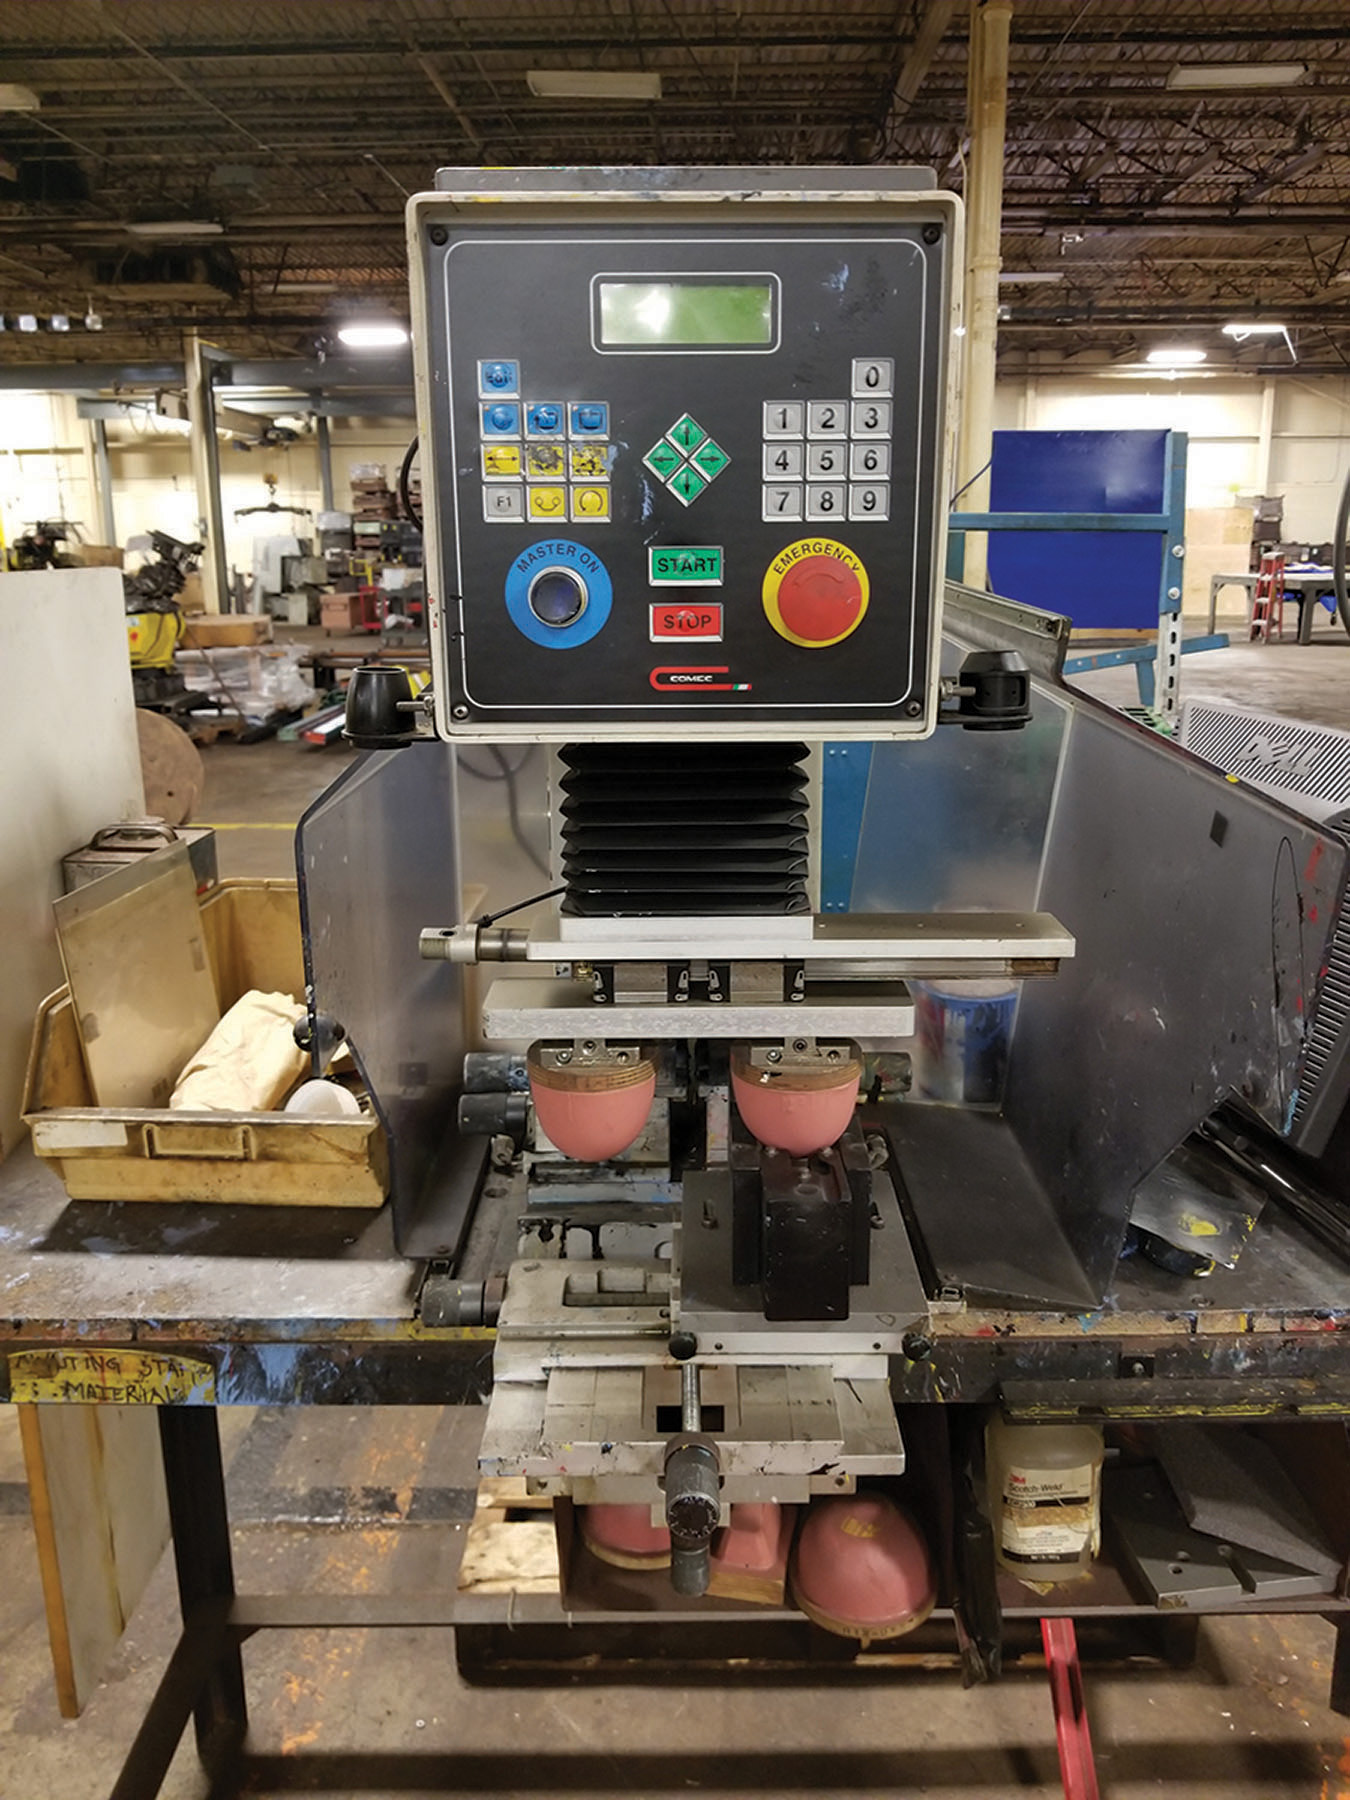 Lot 1 - 2004 COMEC INK PRINT XP-06 PAD PRINT MACHINE, 110-V ON STEEL WORK TABLE WITH SUPPORT PARTS AND PADS